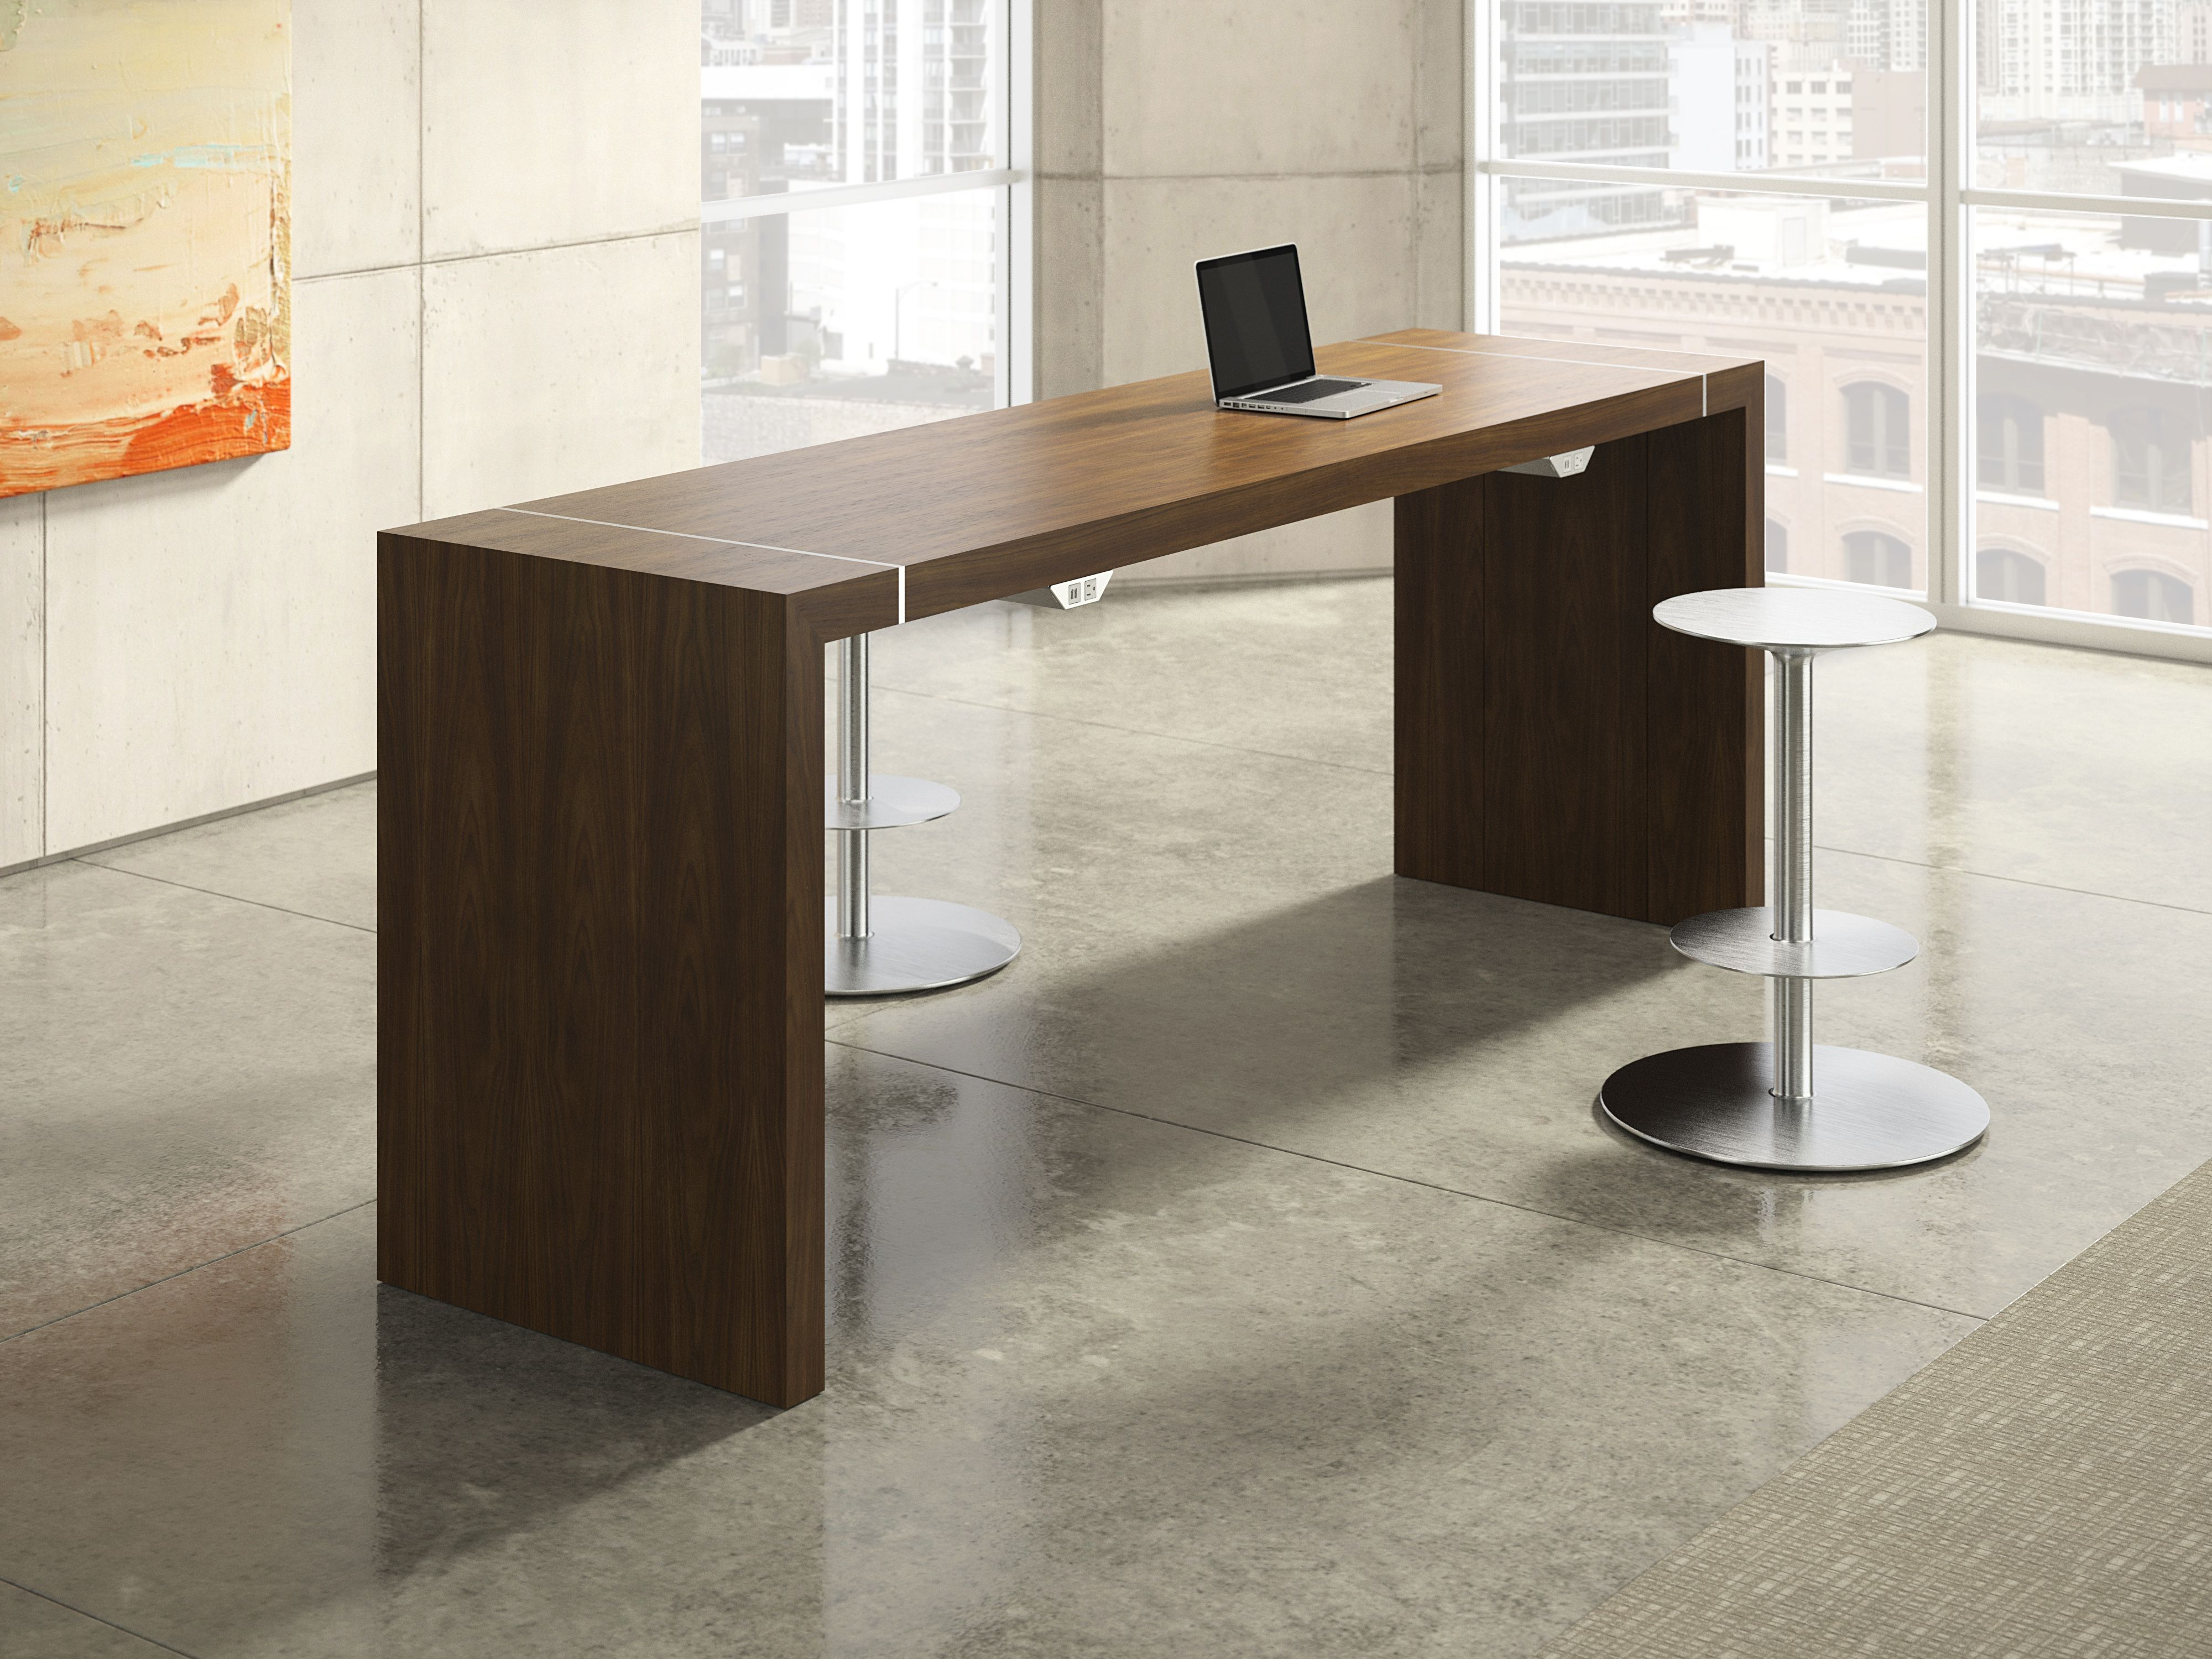 Tesano Is A High Performance Standing Height Table That Addresses - Standing height meeting table